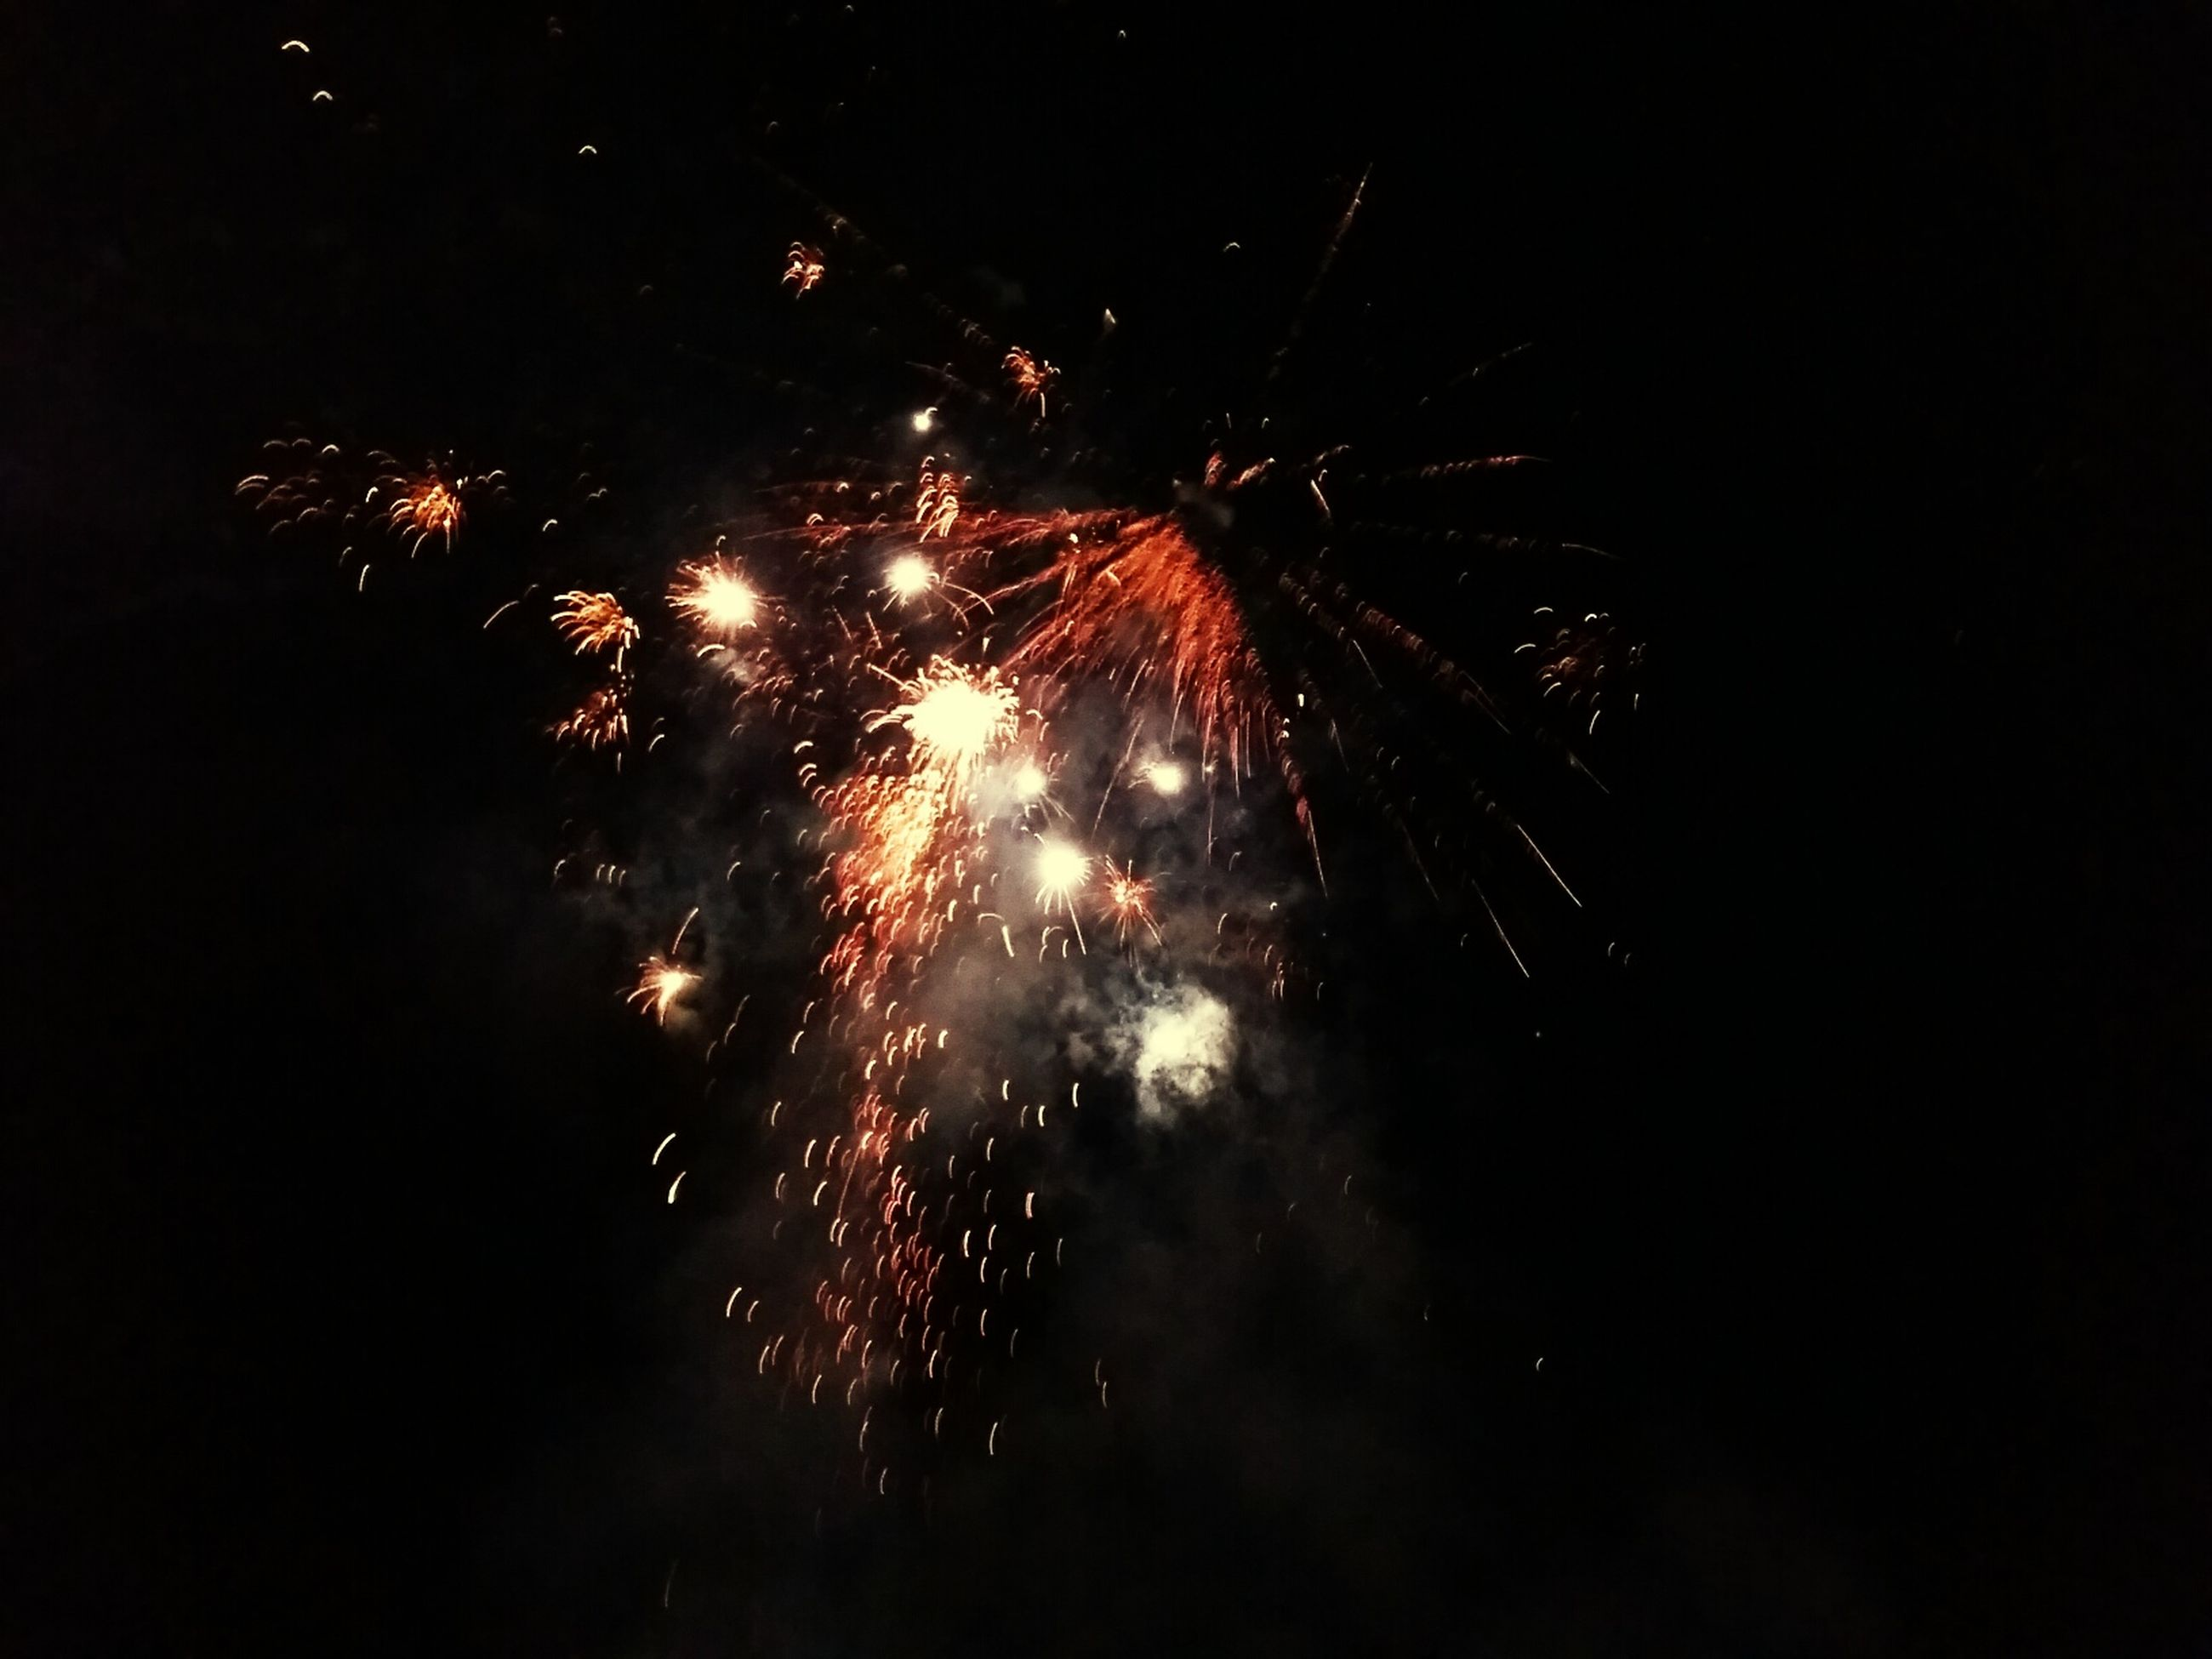 night, firework display, illuminated, long exposure, exploding, firework - man made object, motion, celebration, arts culture and entertainment, glowing, sparks, blurred motion, low angle view, event, firework, sky, entertainment, outdoors, celebration event, no people